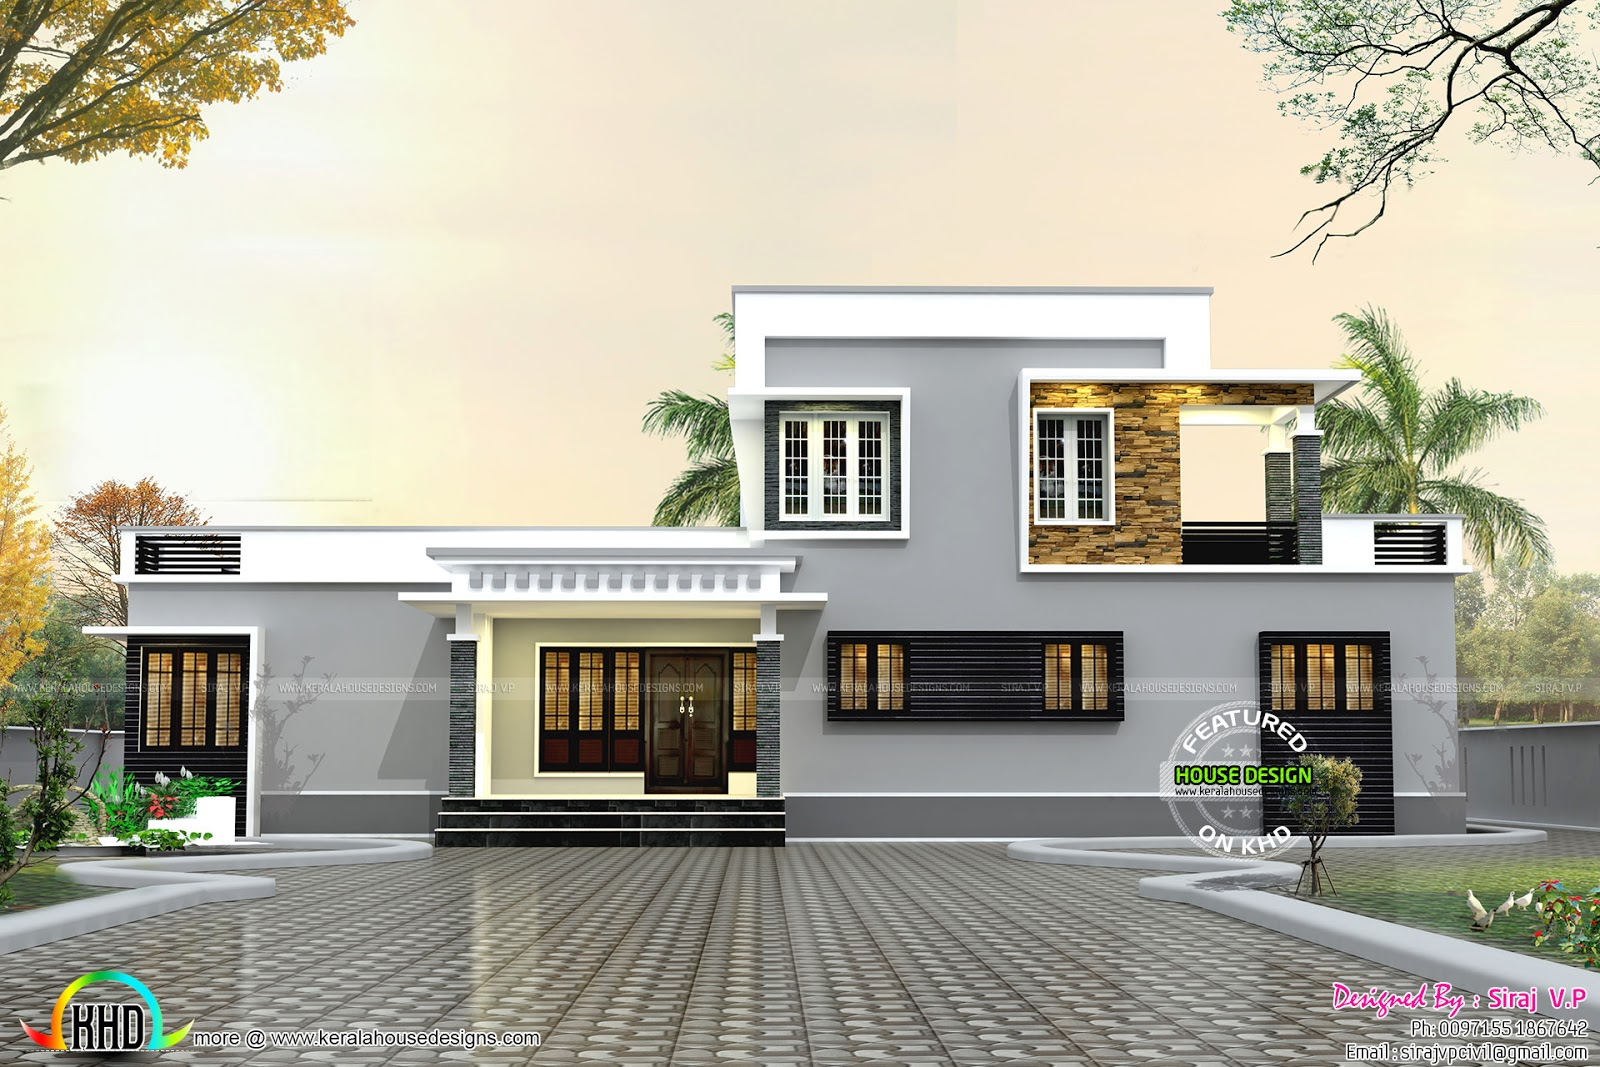 house front view - Get Small Budget House Design In Kerala Background